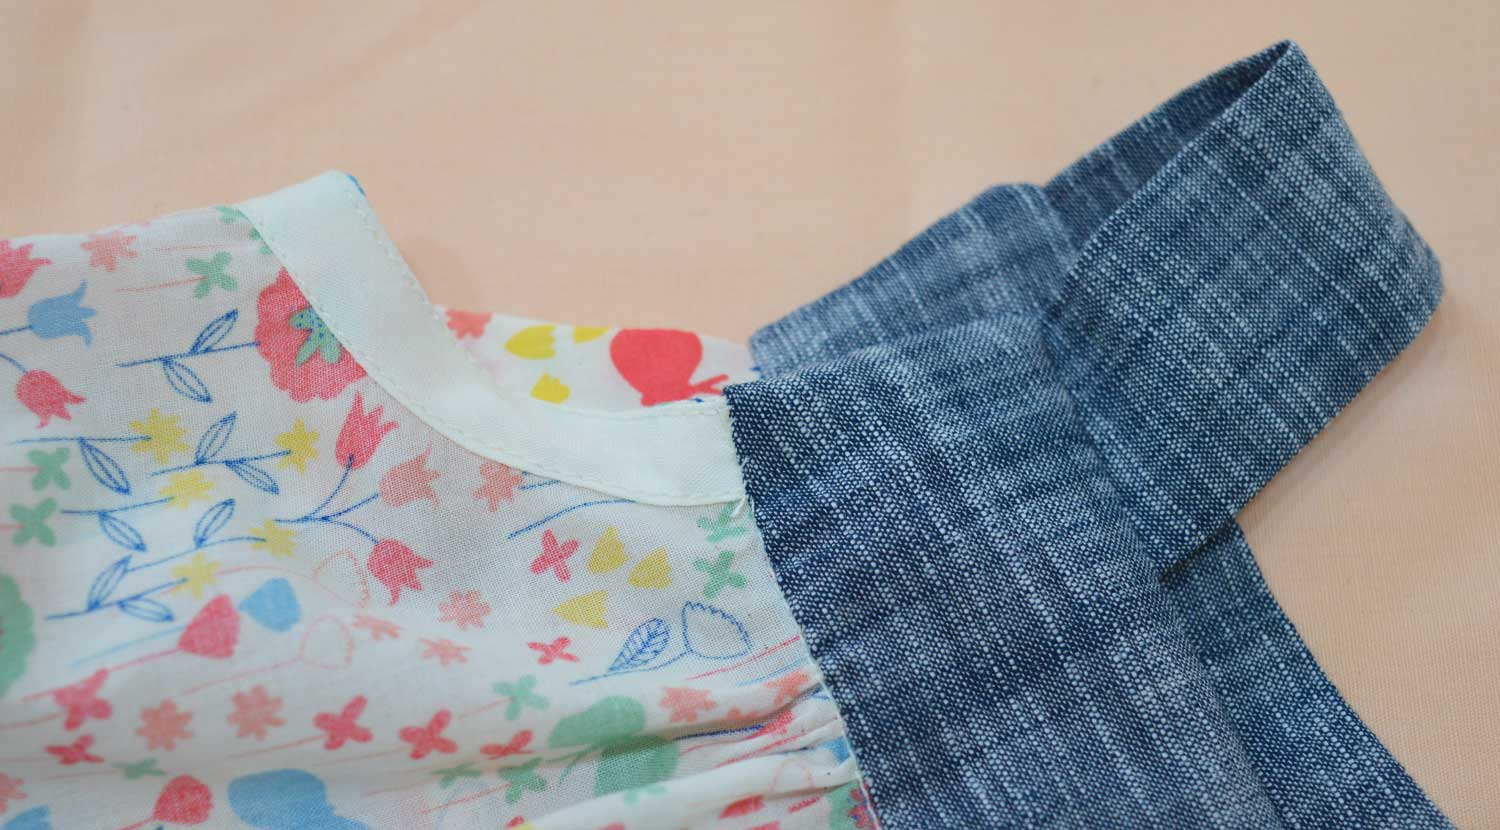 Holm Sown: Kwik Sew K3776 Baby Romper in London Calling Cotton Lawn - Armhole bias binding detail